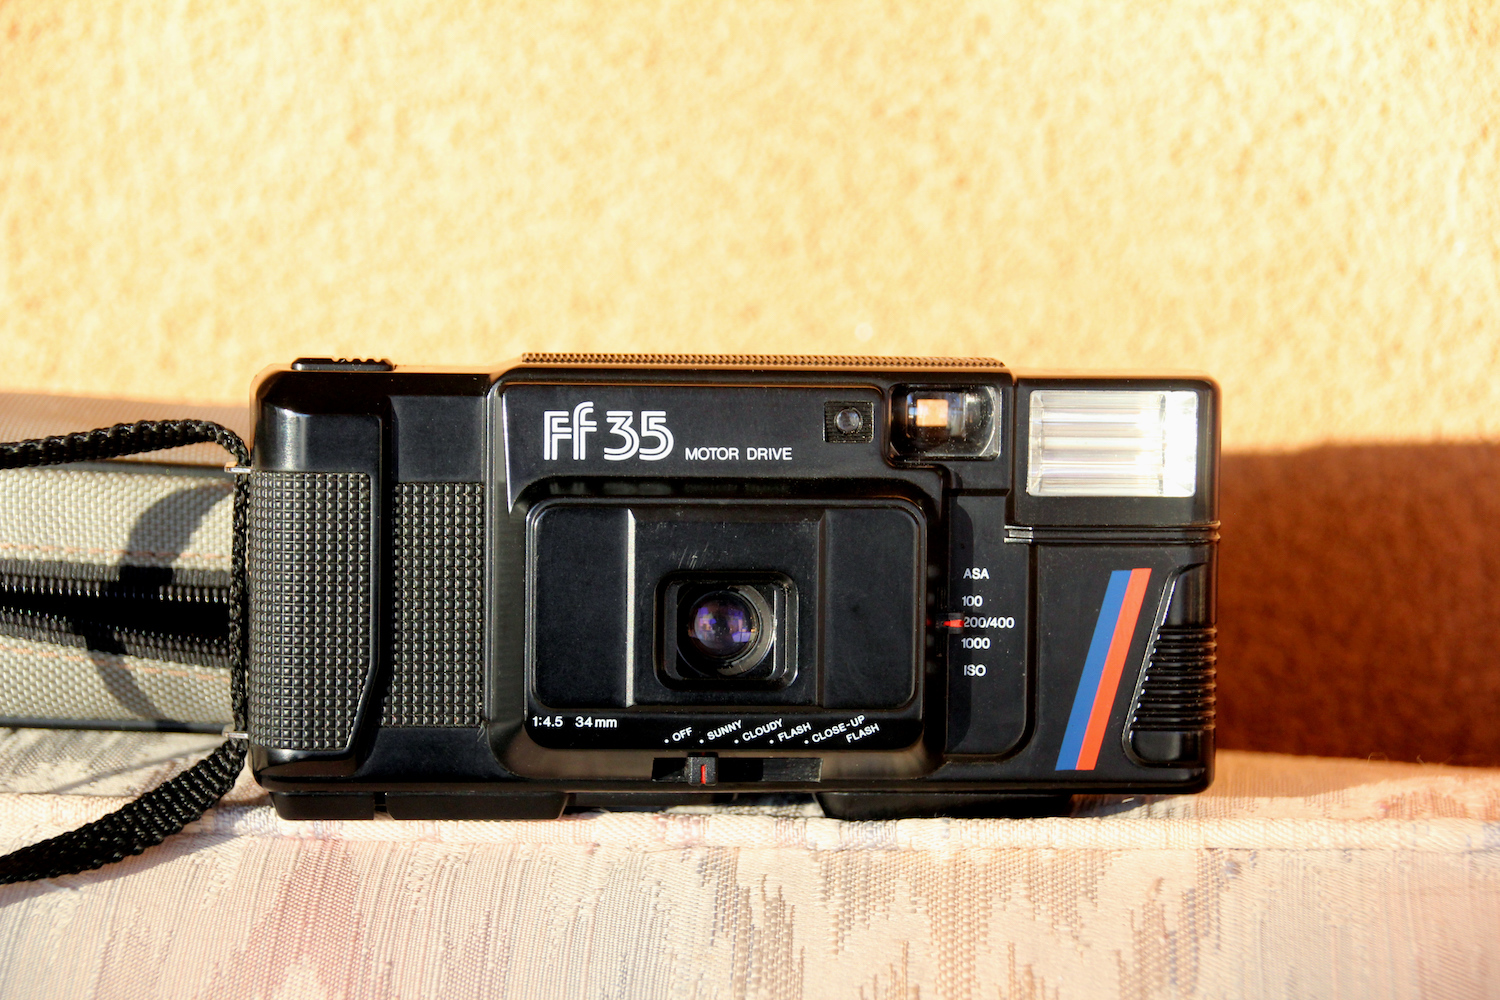 Boxy little 80s point-and-shoot